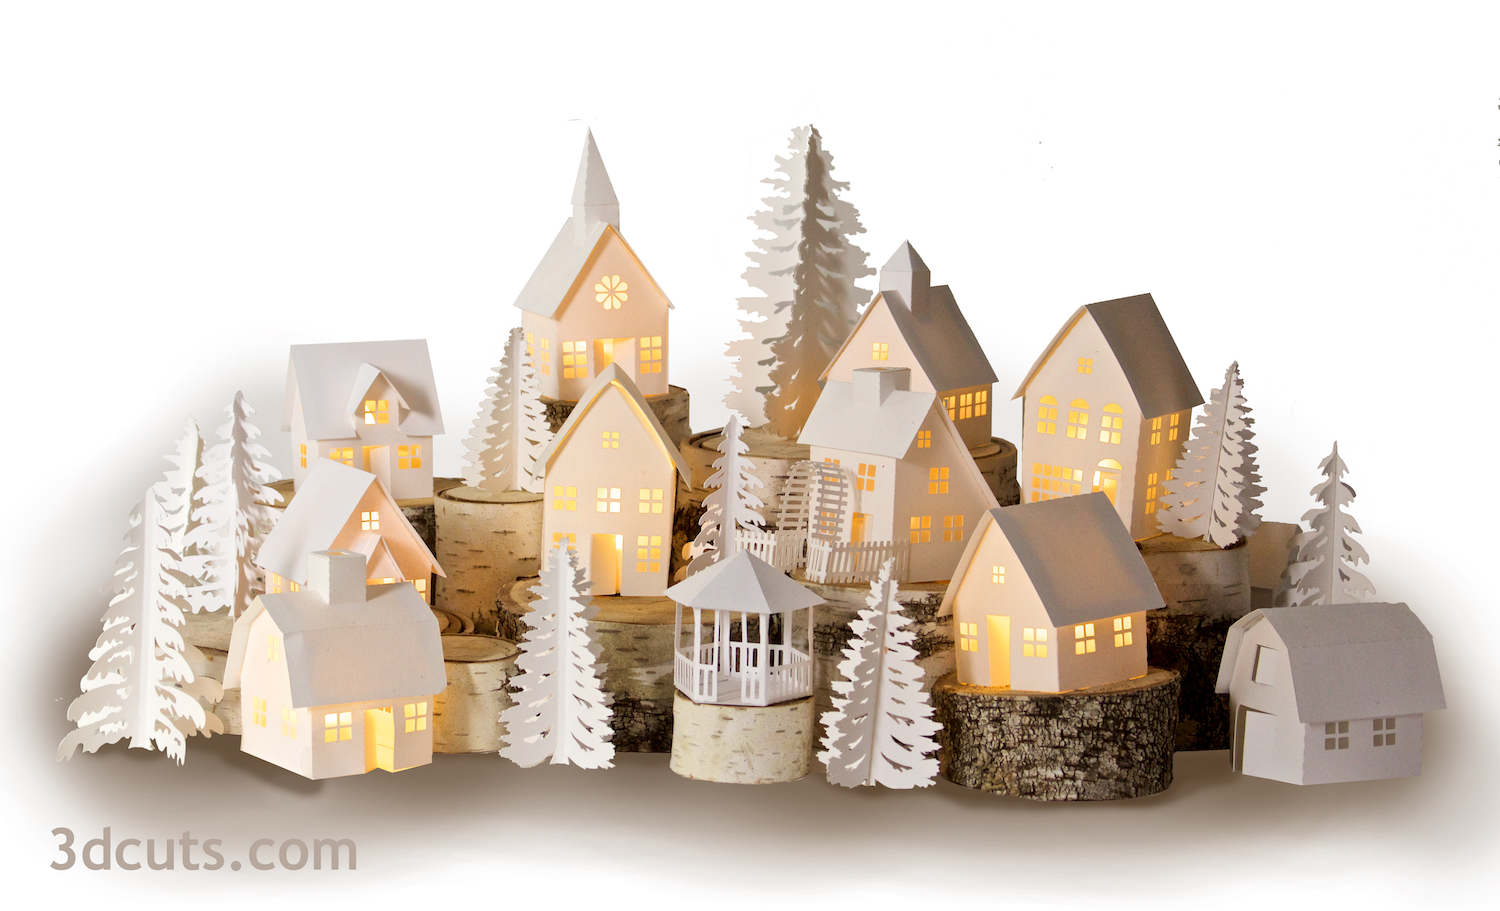 Tea Light Village by Marji Roy of 3dcuts.com